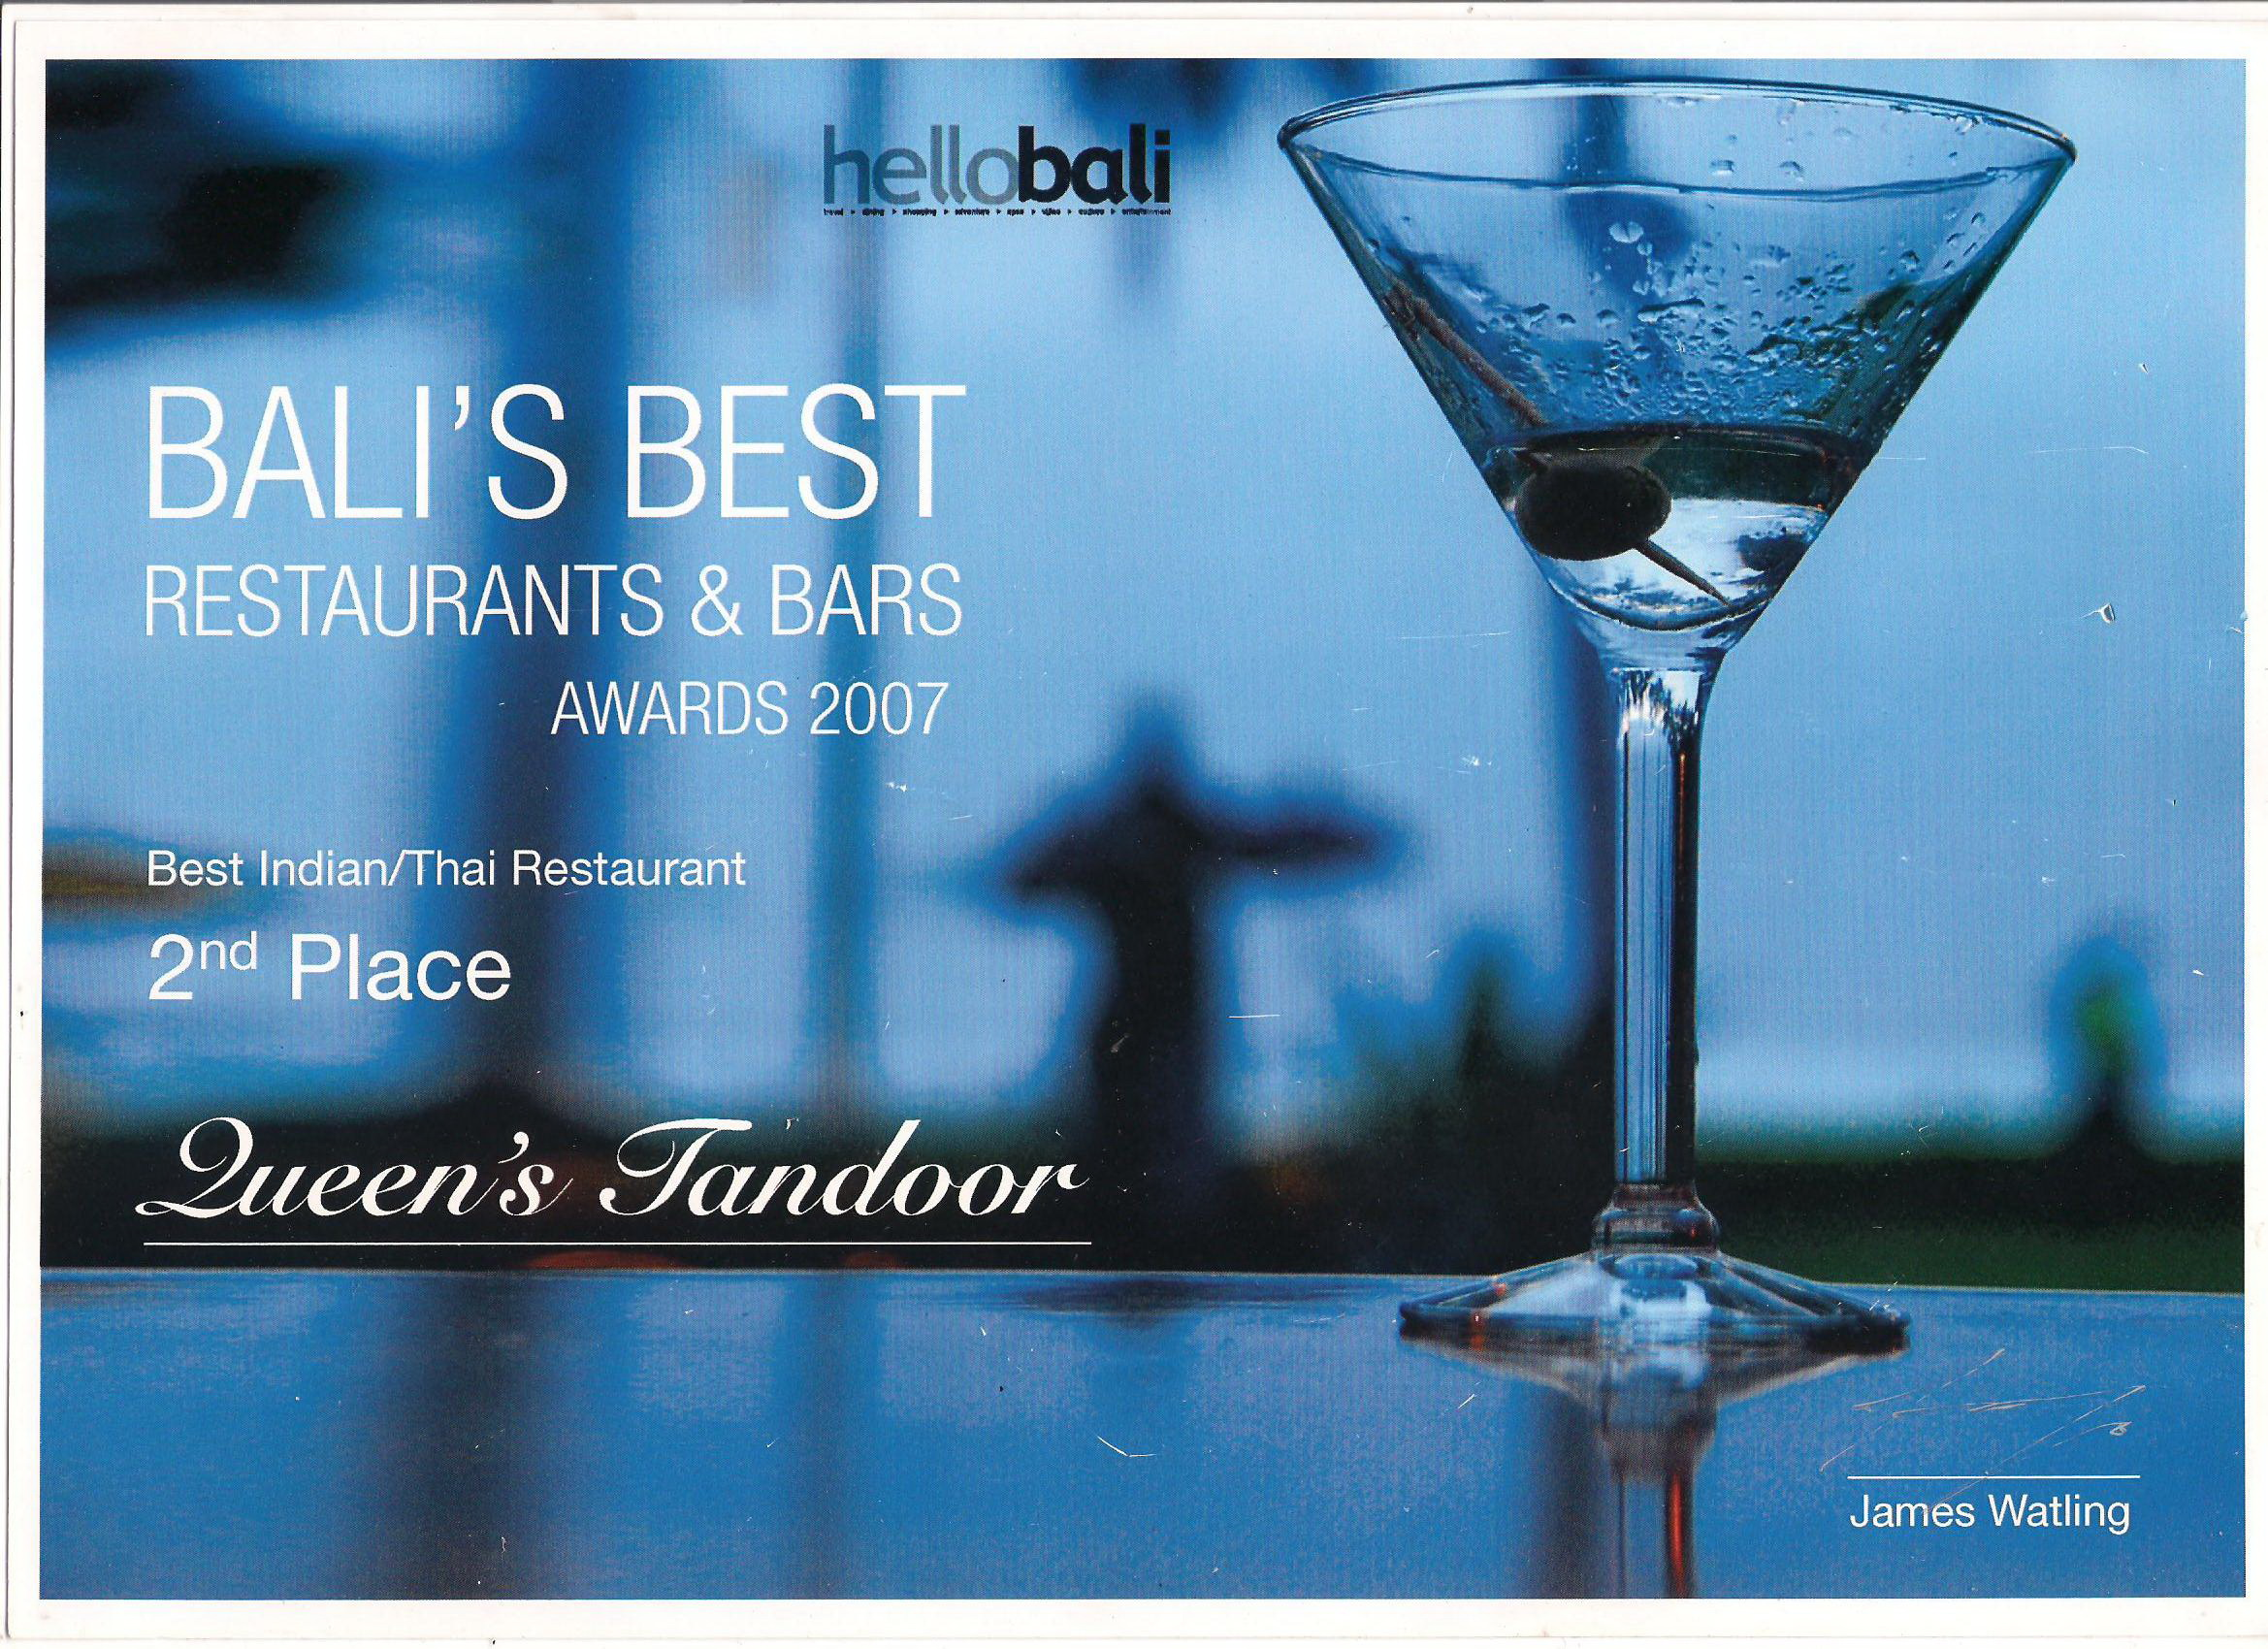 Hello Bali Award 2007 - Best Indian & Thai Restaurant